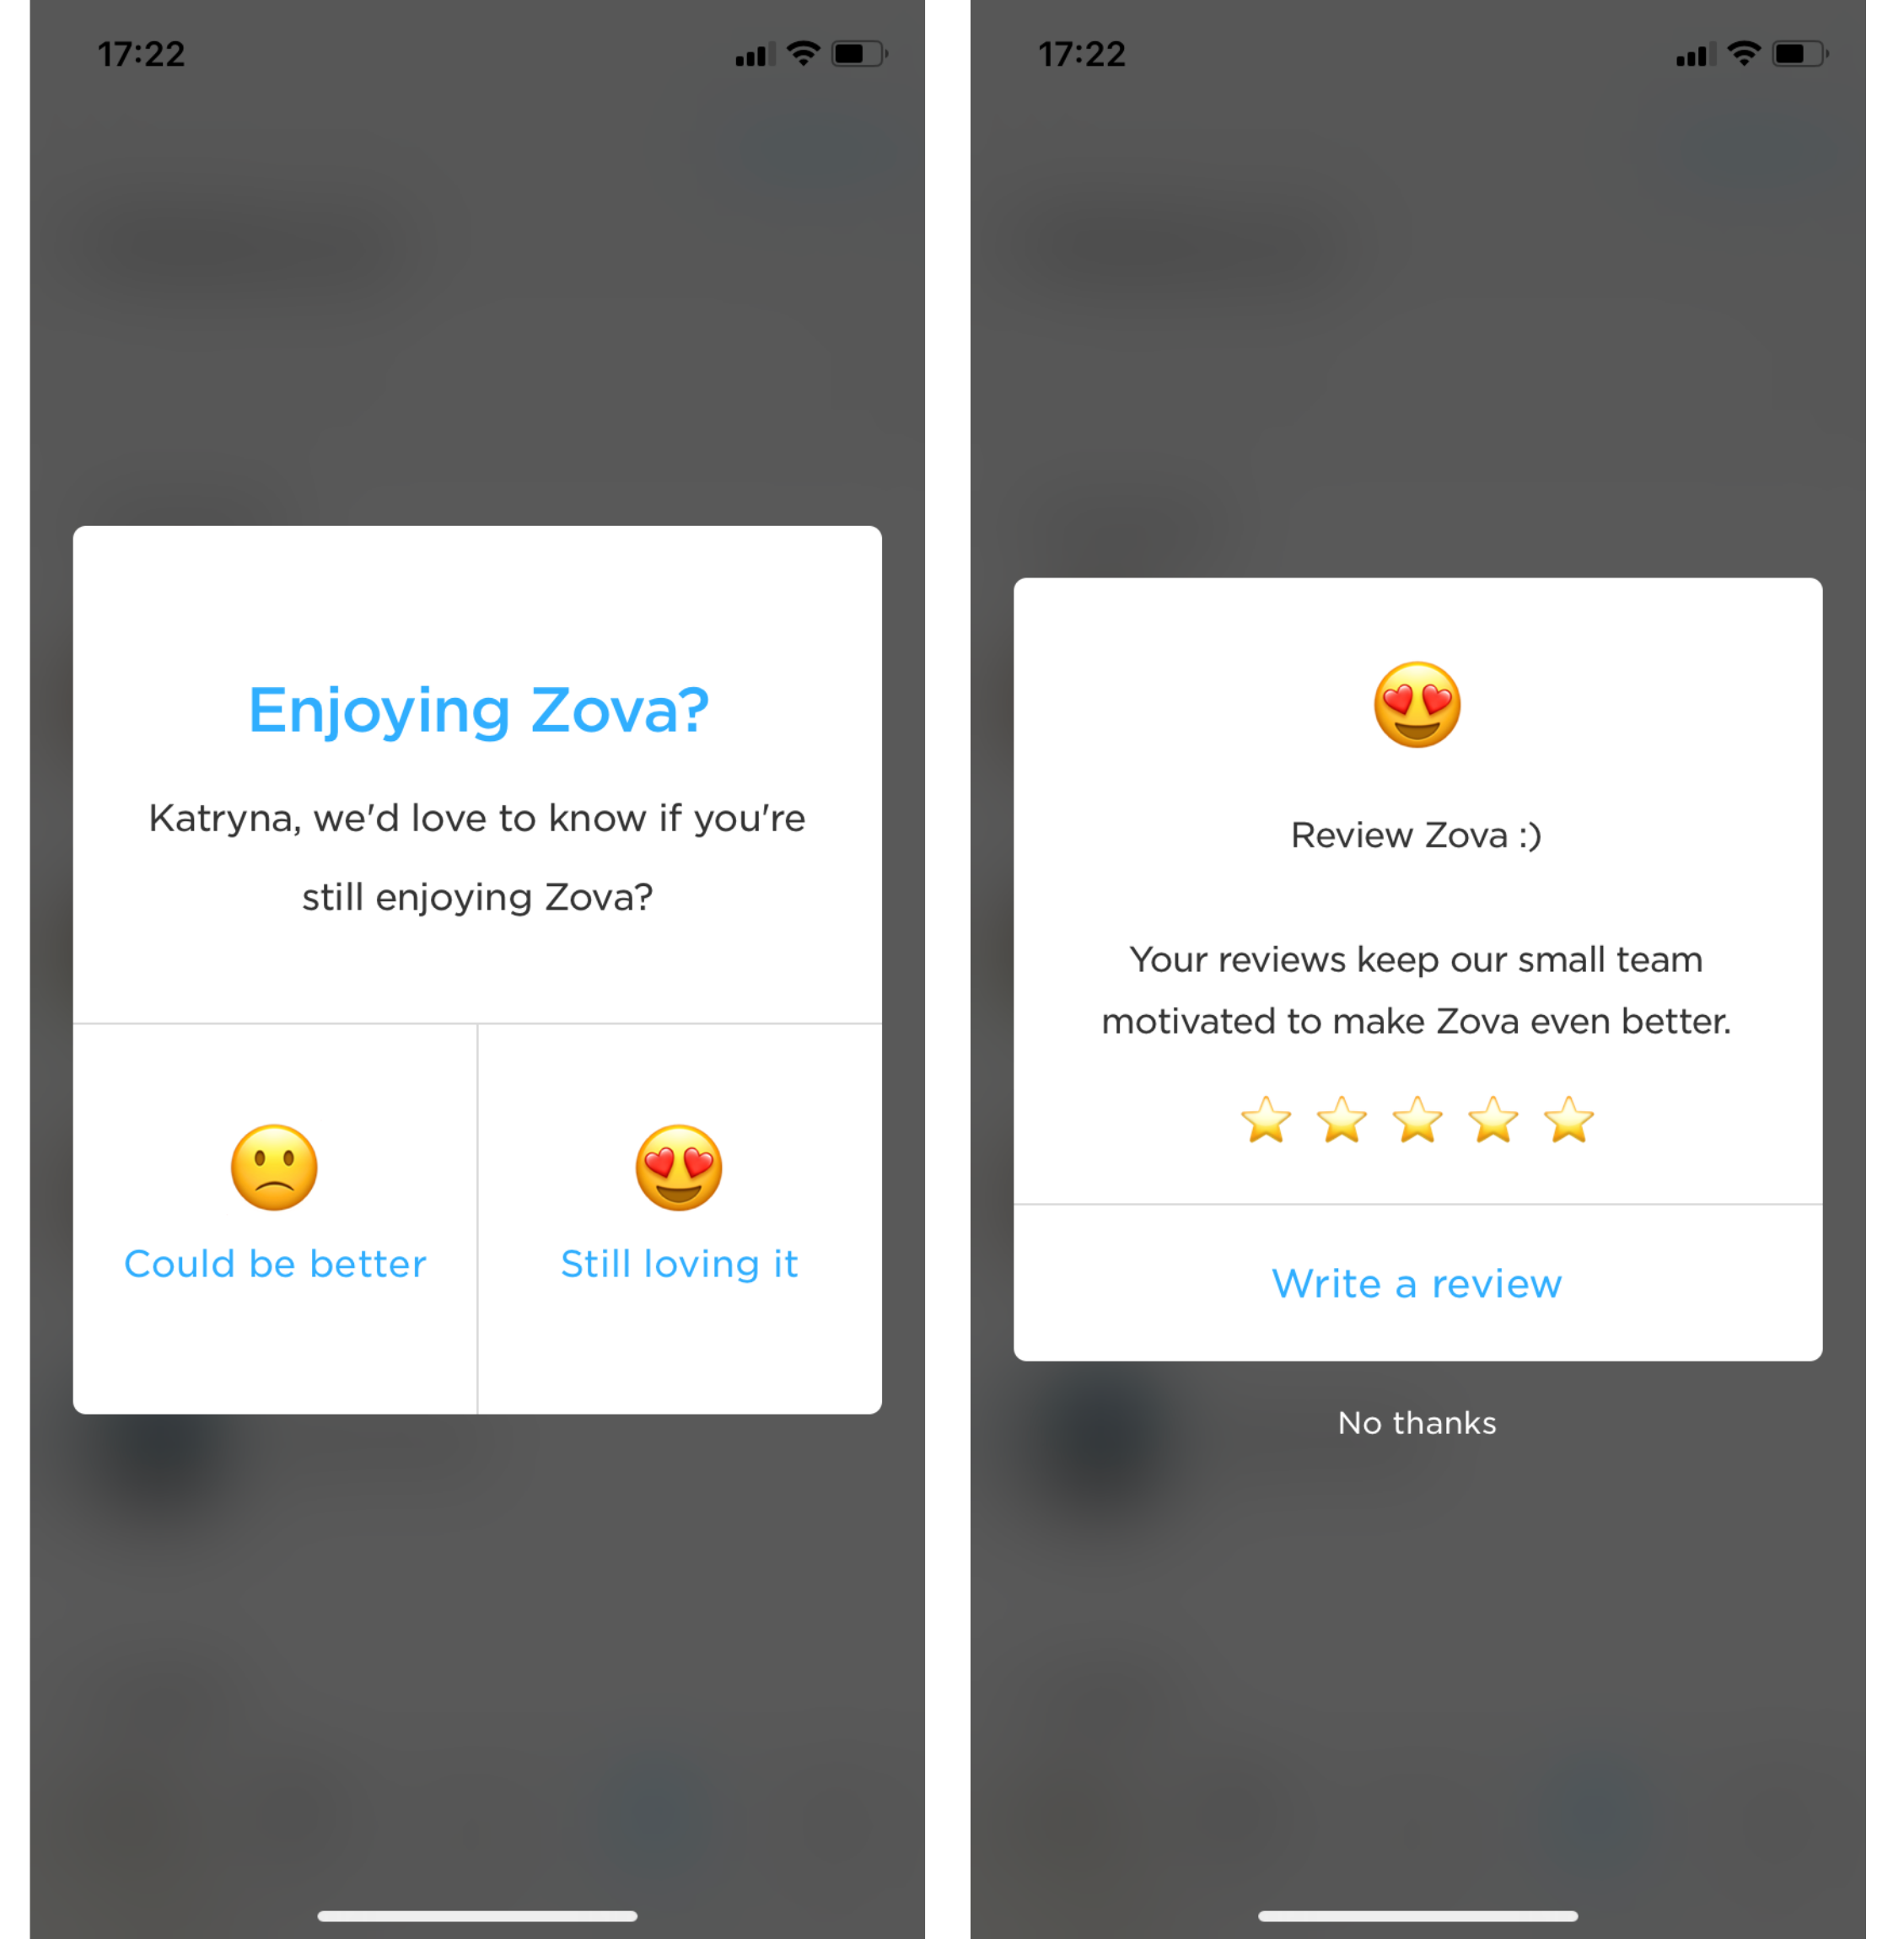 zova mobile app user review request emoji rating system